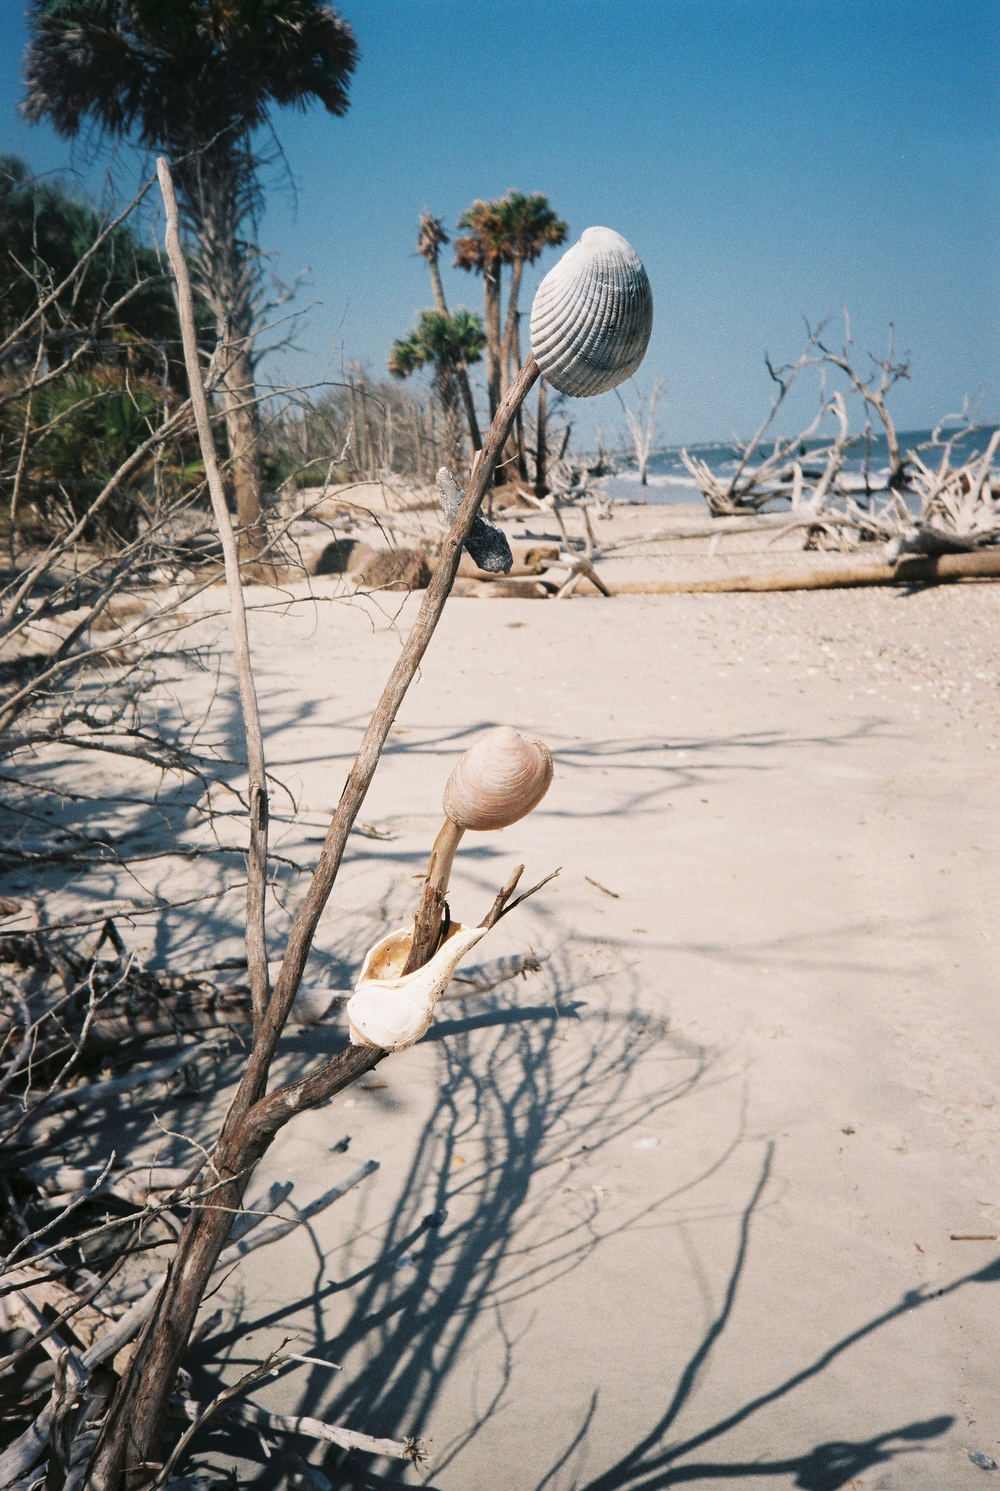 Botany bay was covered in shells.